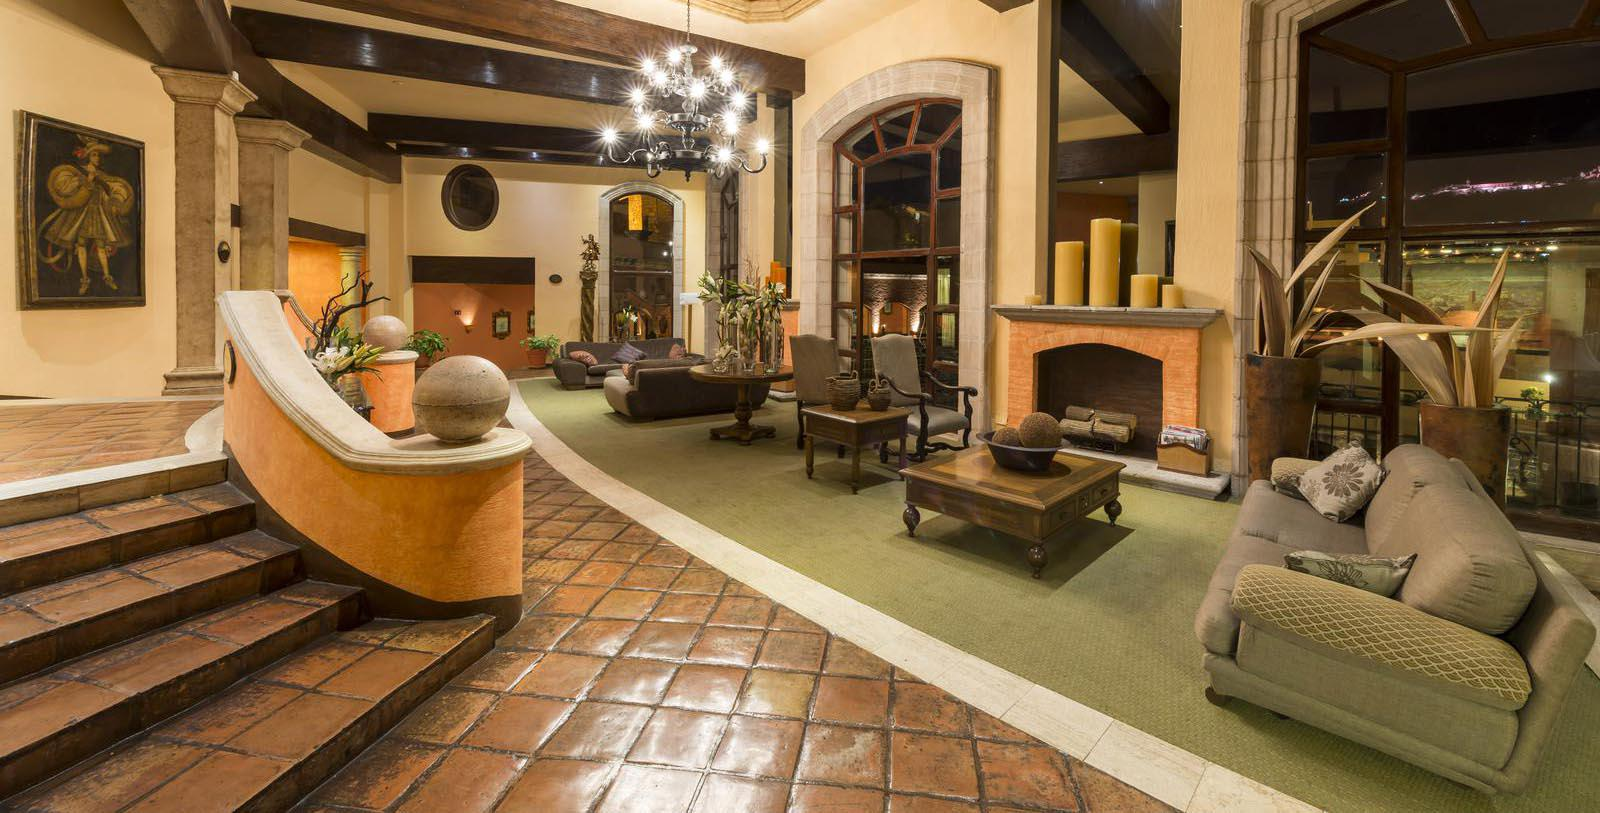 Image of Lounge Area with Fireplace Quinta Real Zacatecas, 1866, Member of Historic Hotels Worldwide, in Zacatecas, Mexico, Explore